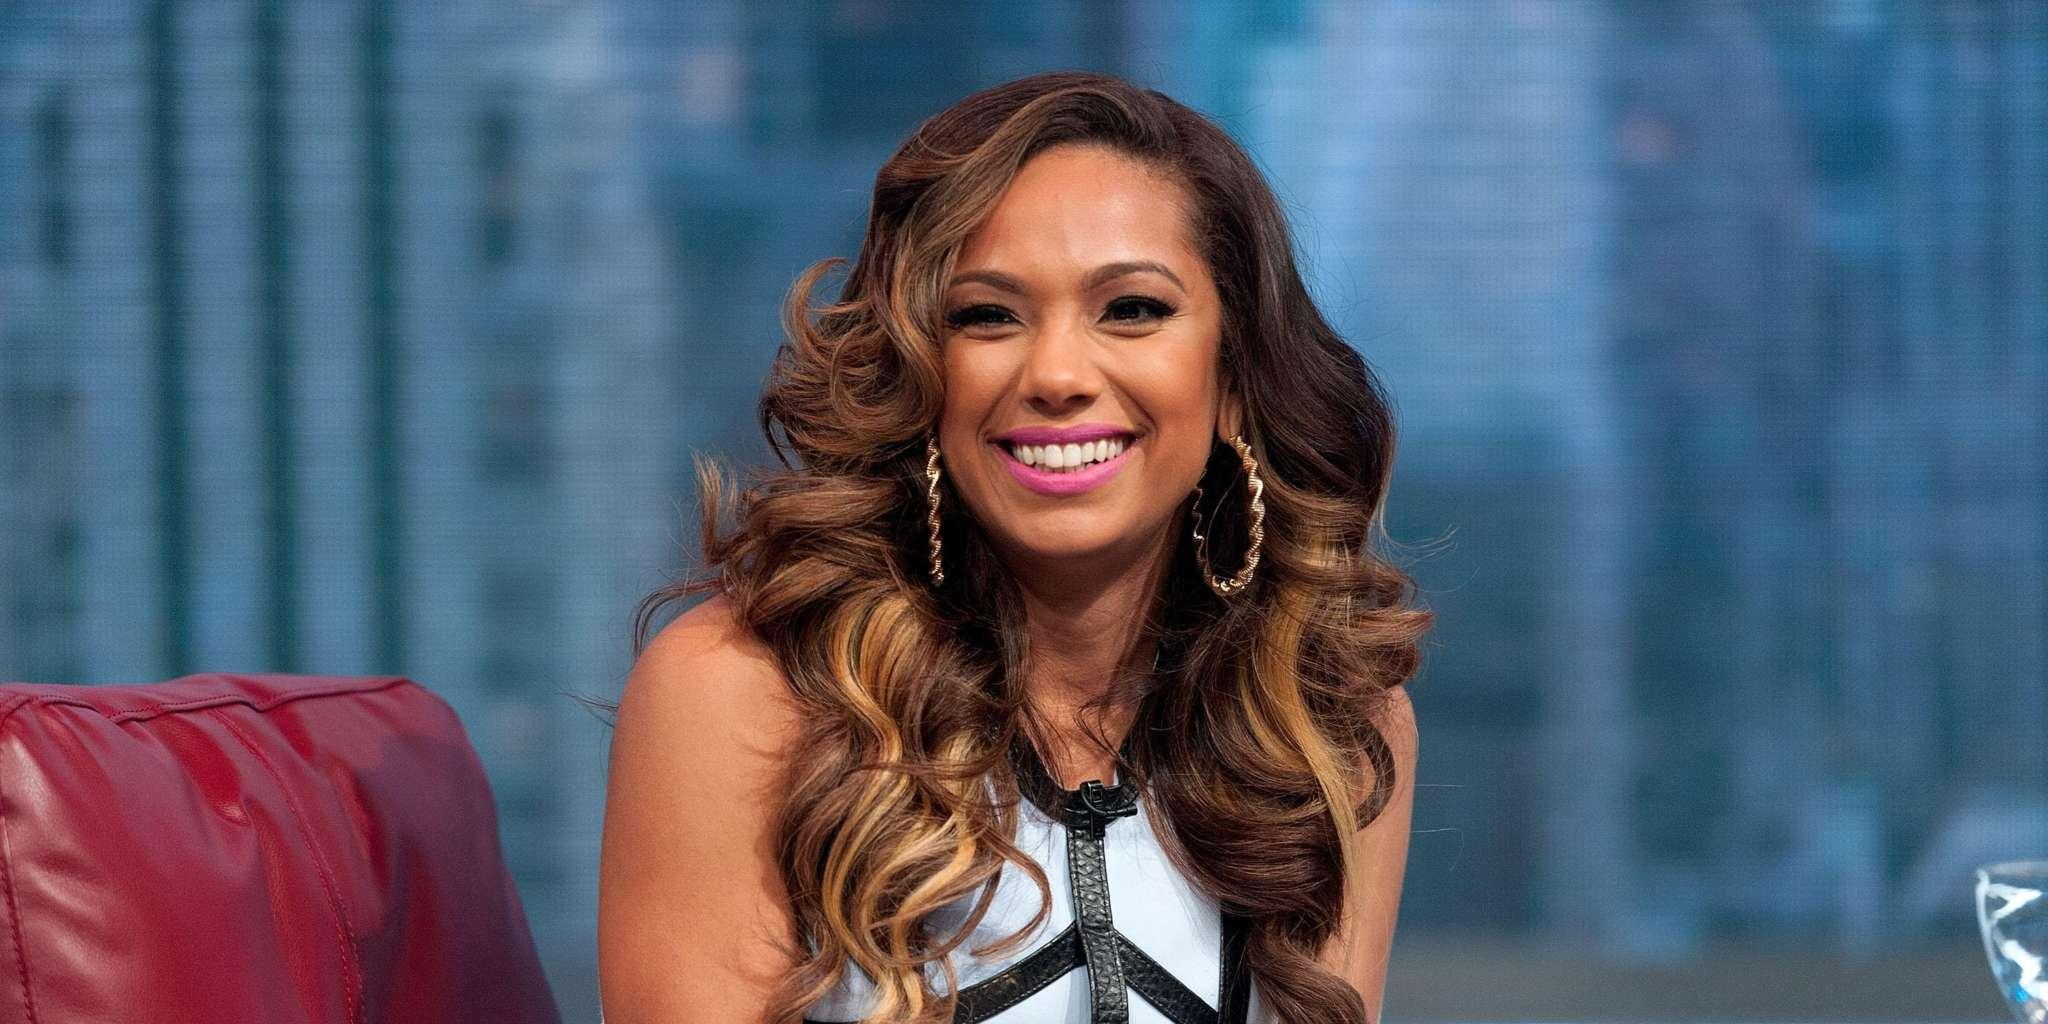 Erica Mena Shocks Fans With New Info Regarding Protection Masks Against The Covid-19